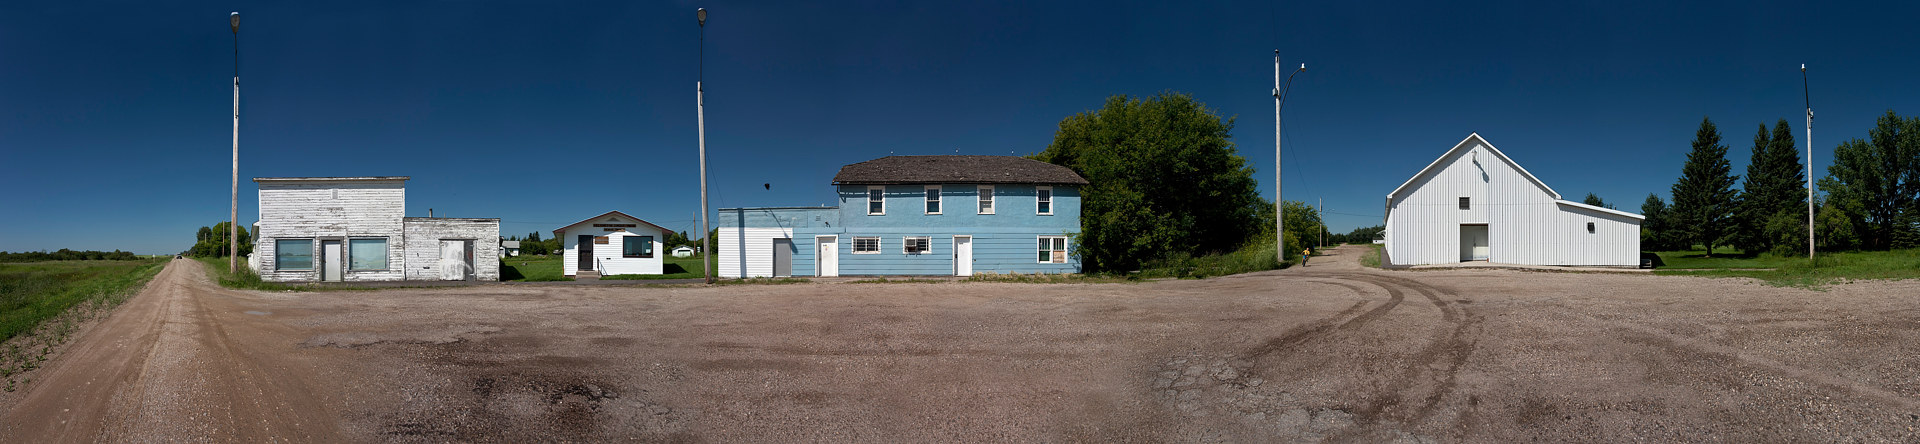 Hendon SK. 116X33 2009 by Danny Singer